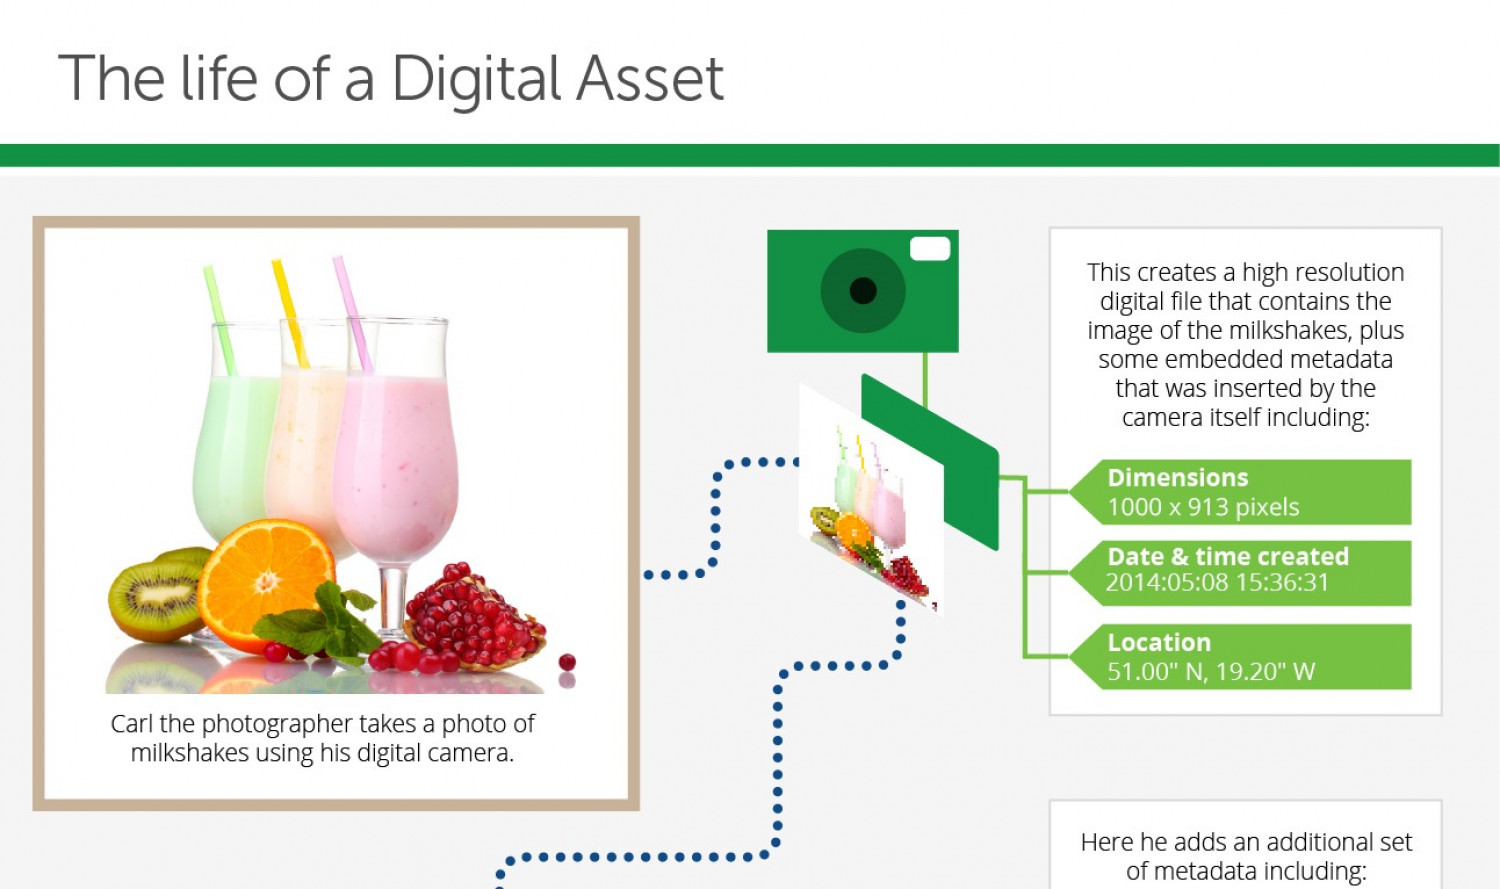 The Life of a Digital Asset Infographic